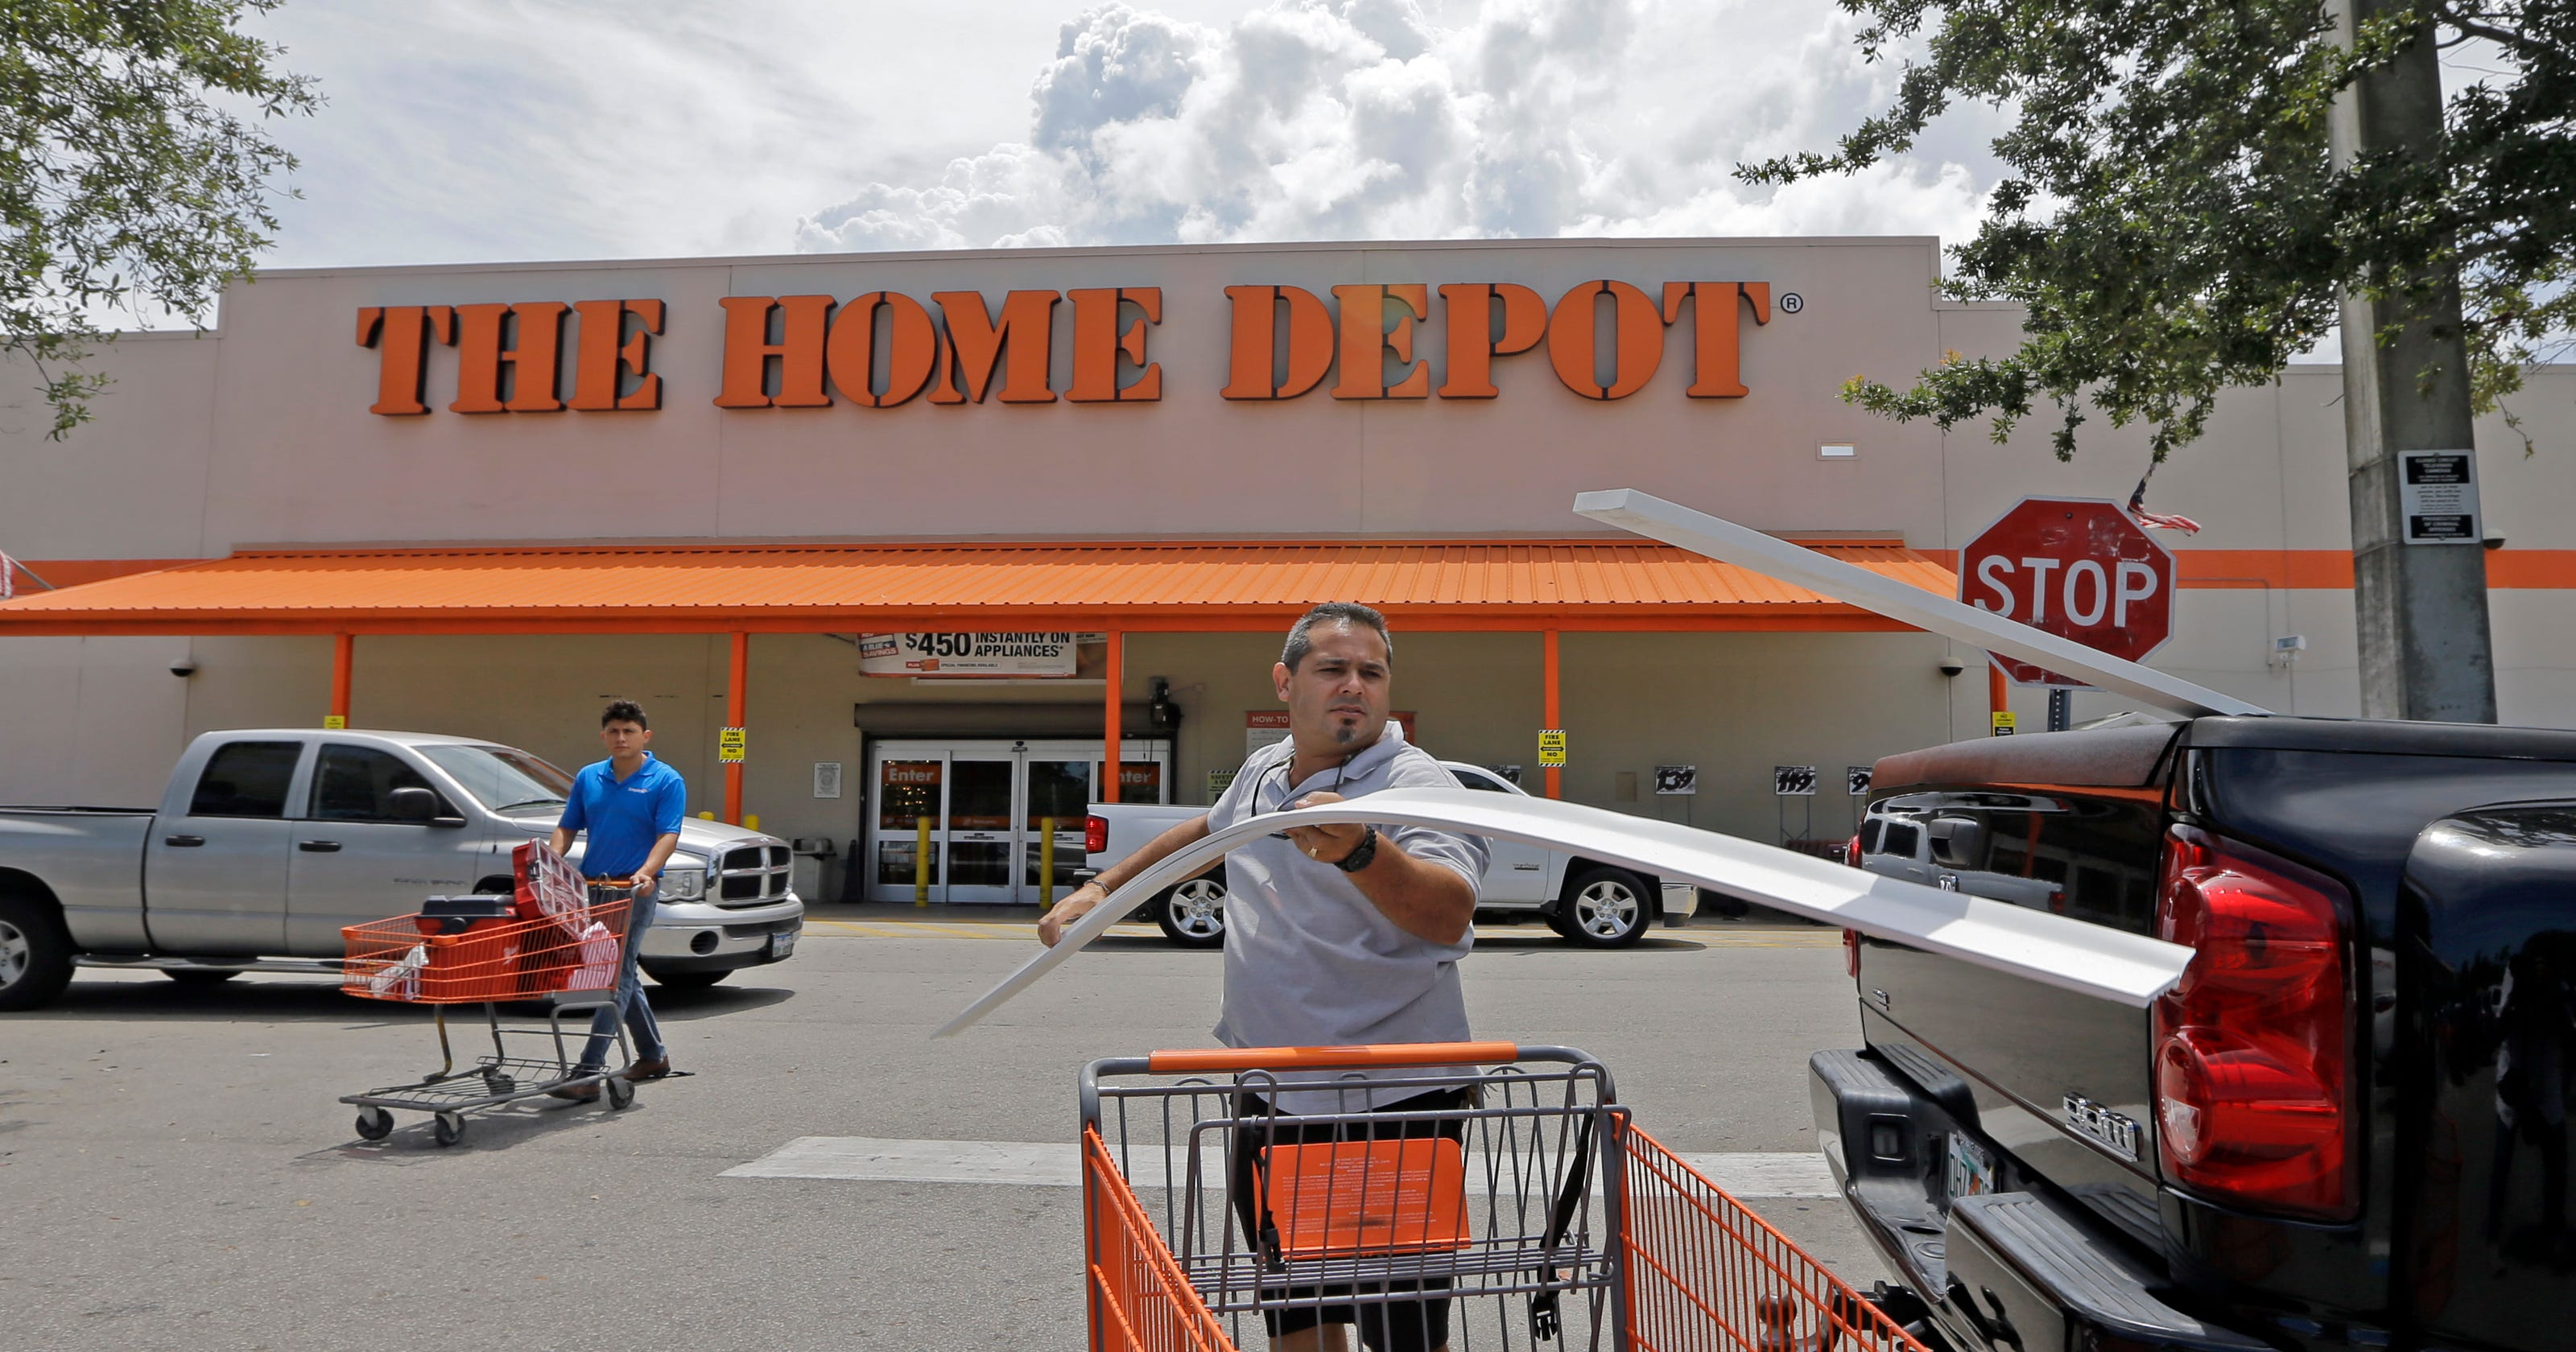 Exclusive: Home Depot to donate $50M to train construction